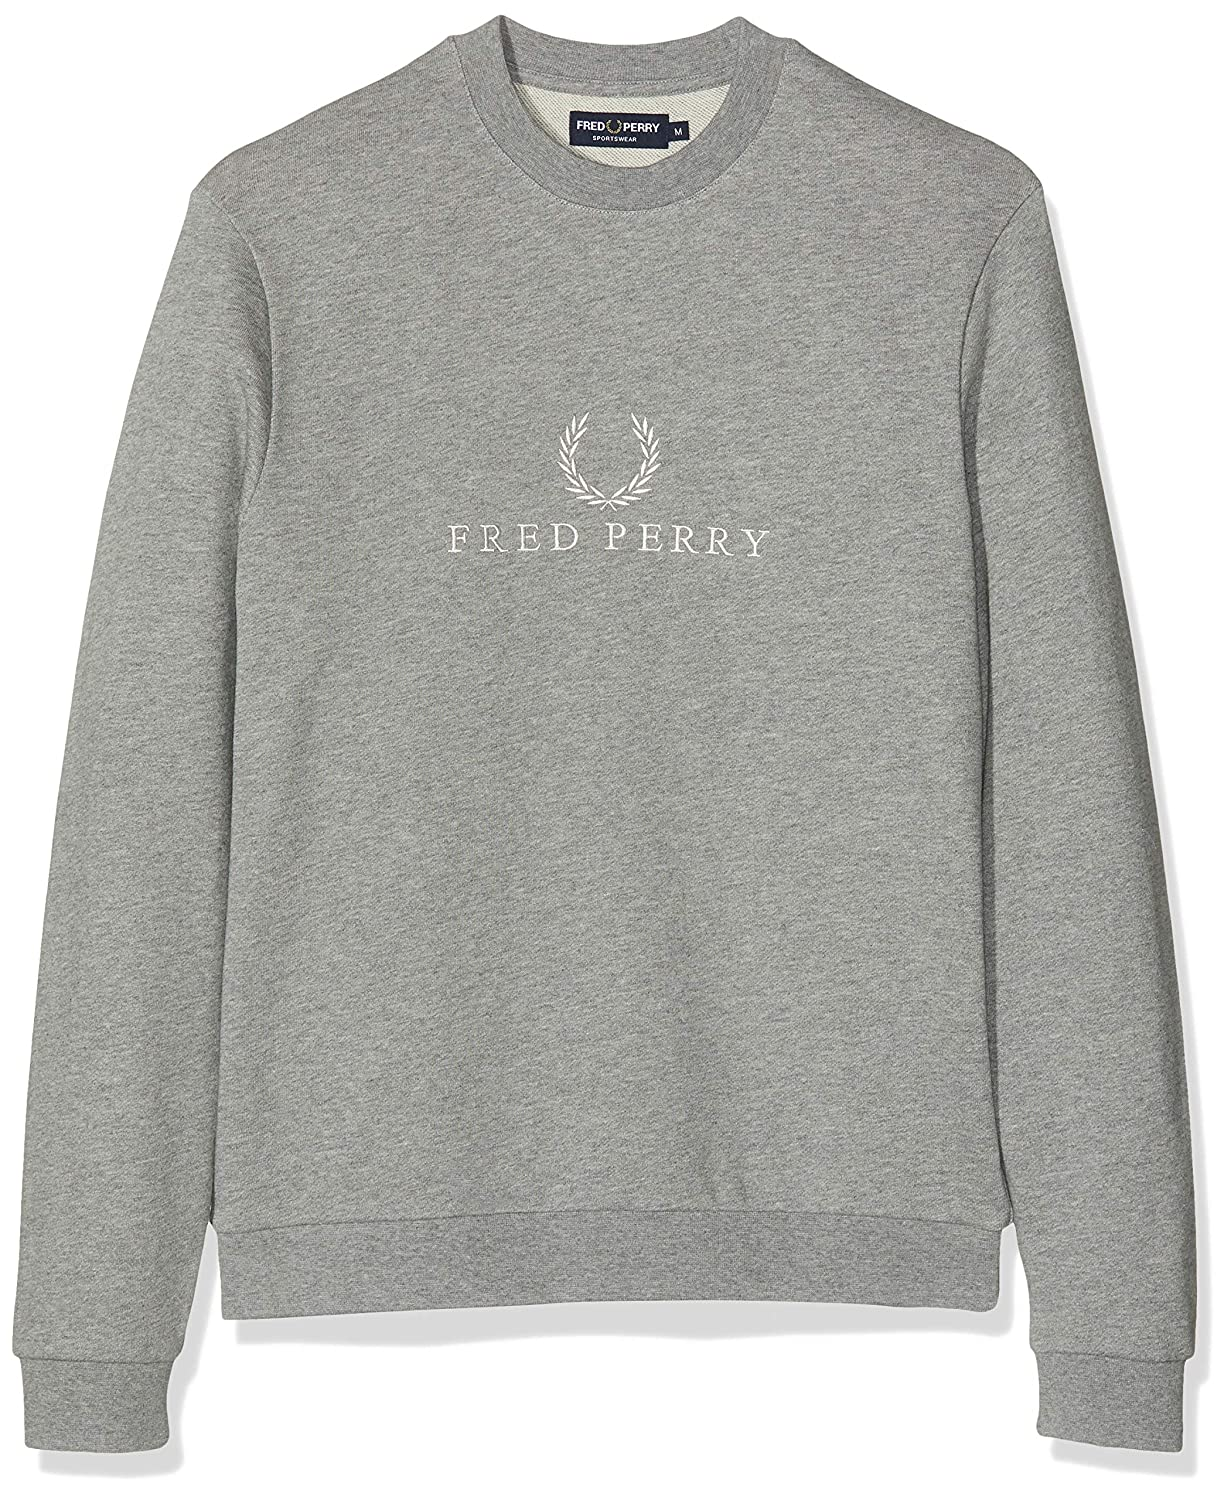 Fred Perry Embroidered Steel Marl Felpa con cappuccio